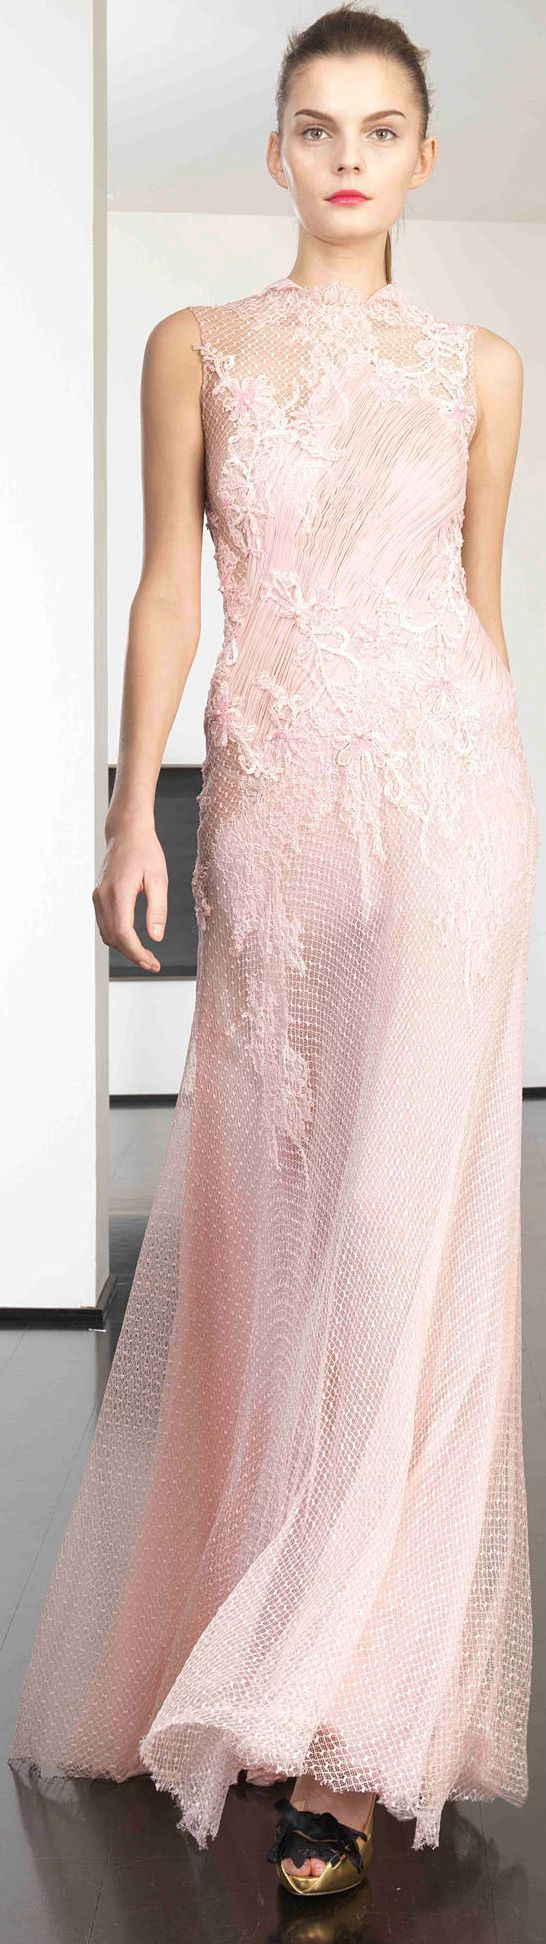 -Dany Atrache Couture. Beautiful designer evening gown in blush with both lace and netting!!!